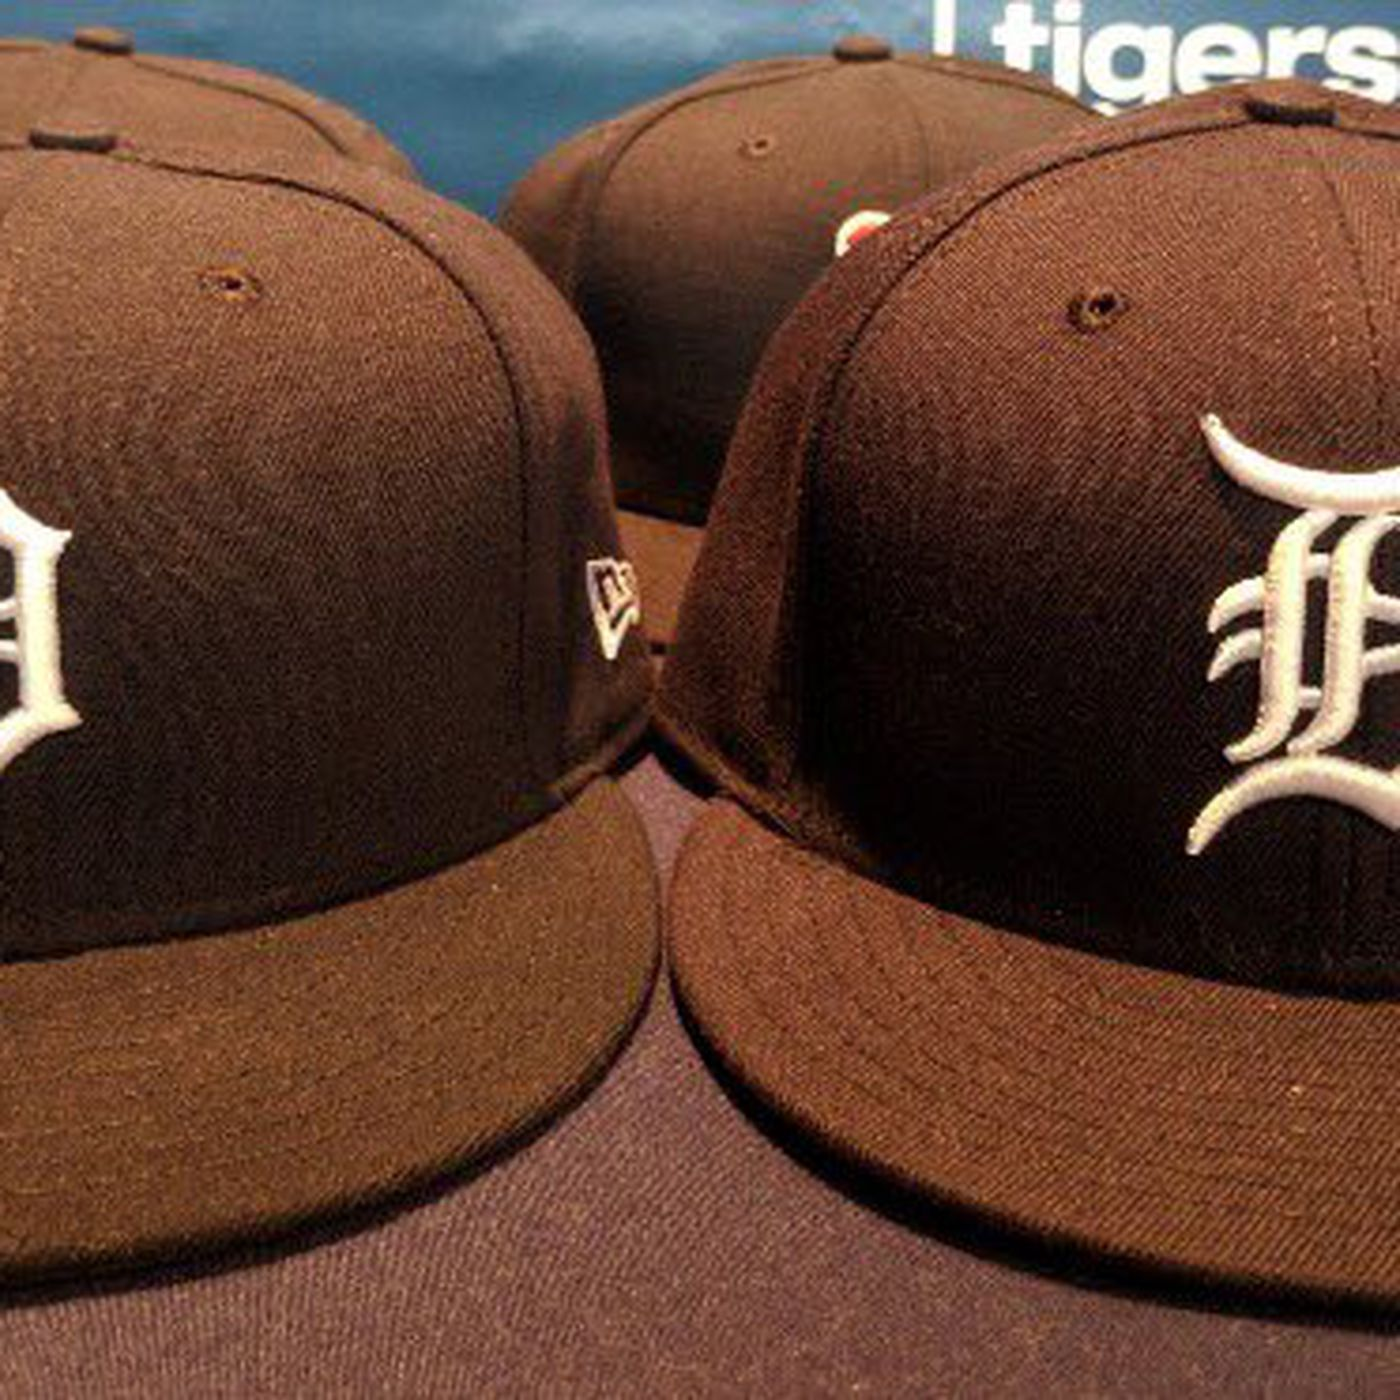 a338a185 The Tigers' new hats are pretty dang awful - Bless You Boys